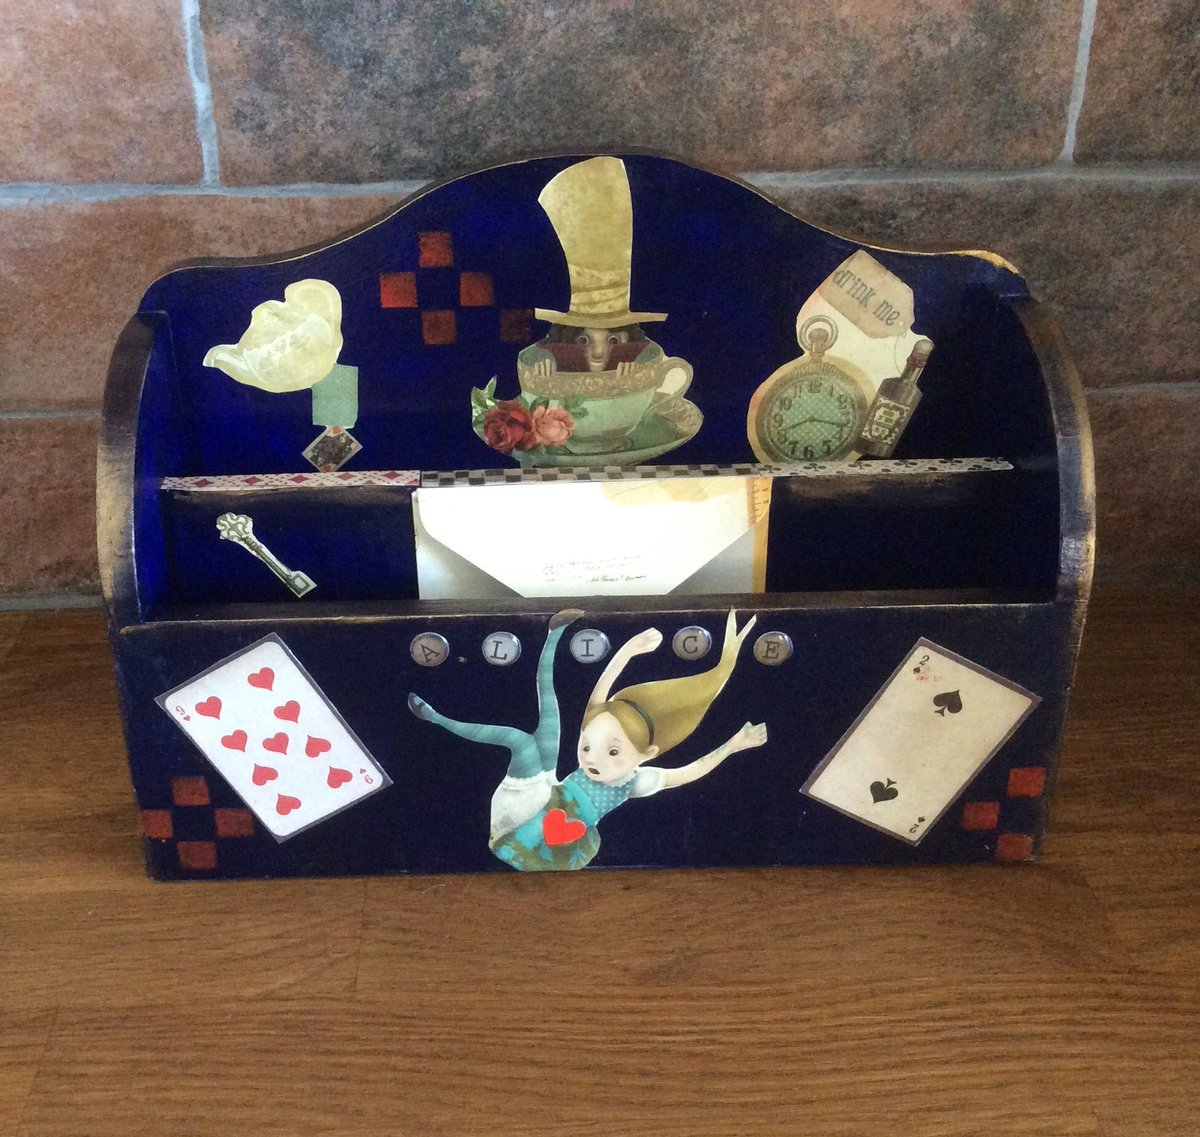 Excited to share the latest addition to my #etsy shop: Alice in Wonderland letter rack, letter storage rack, home organisation, Alice in Wonderland home decor, Alice in Wonderland gift https://etsy.me/2PtKVYF #OOAK #handmadewithlove #AliceInWonderland #etsygiftpic.twitter.com/GJagmCbCLO